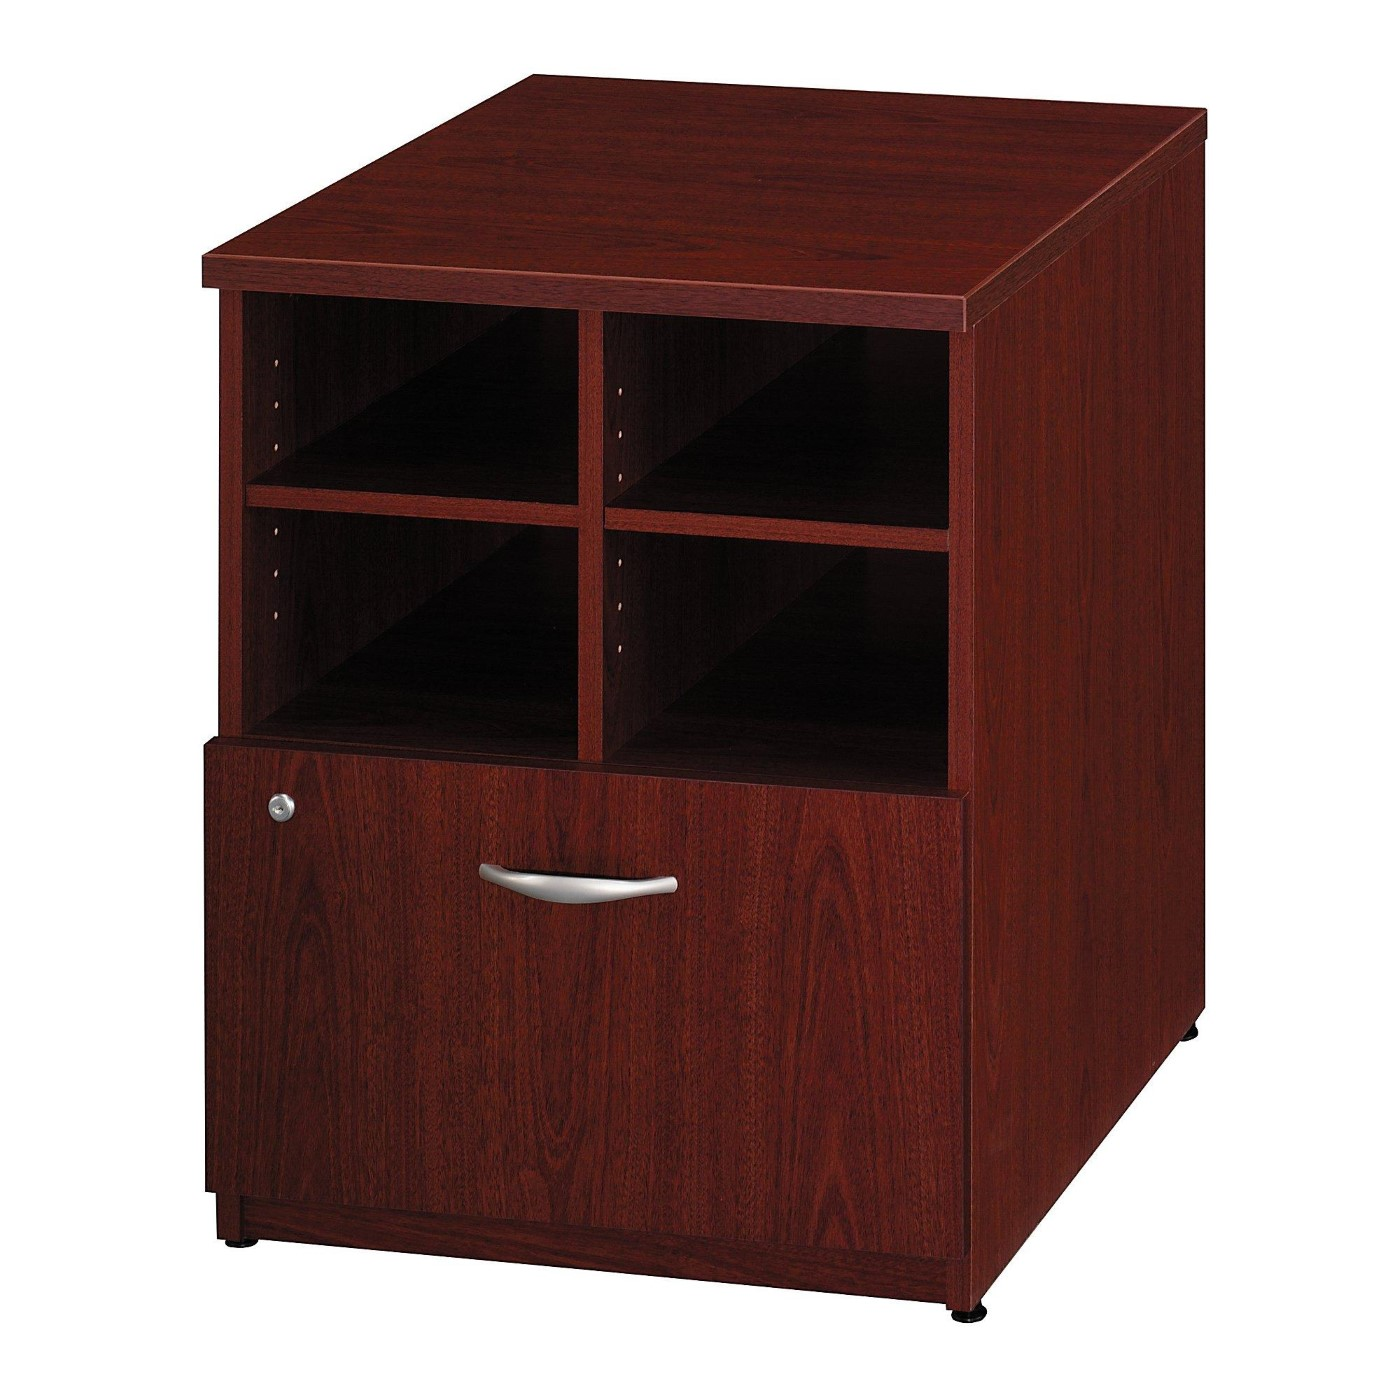 <font color=#c60><b>BUSH BUSINESS FURNITURE SERIES C 24W STORAGE CABINET. FREE SHIPPING</font></b>